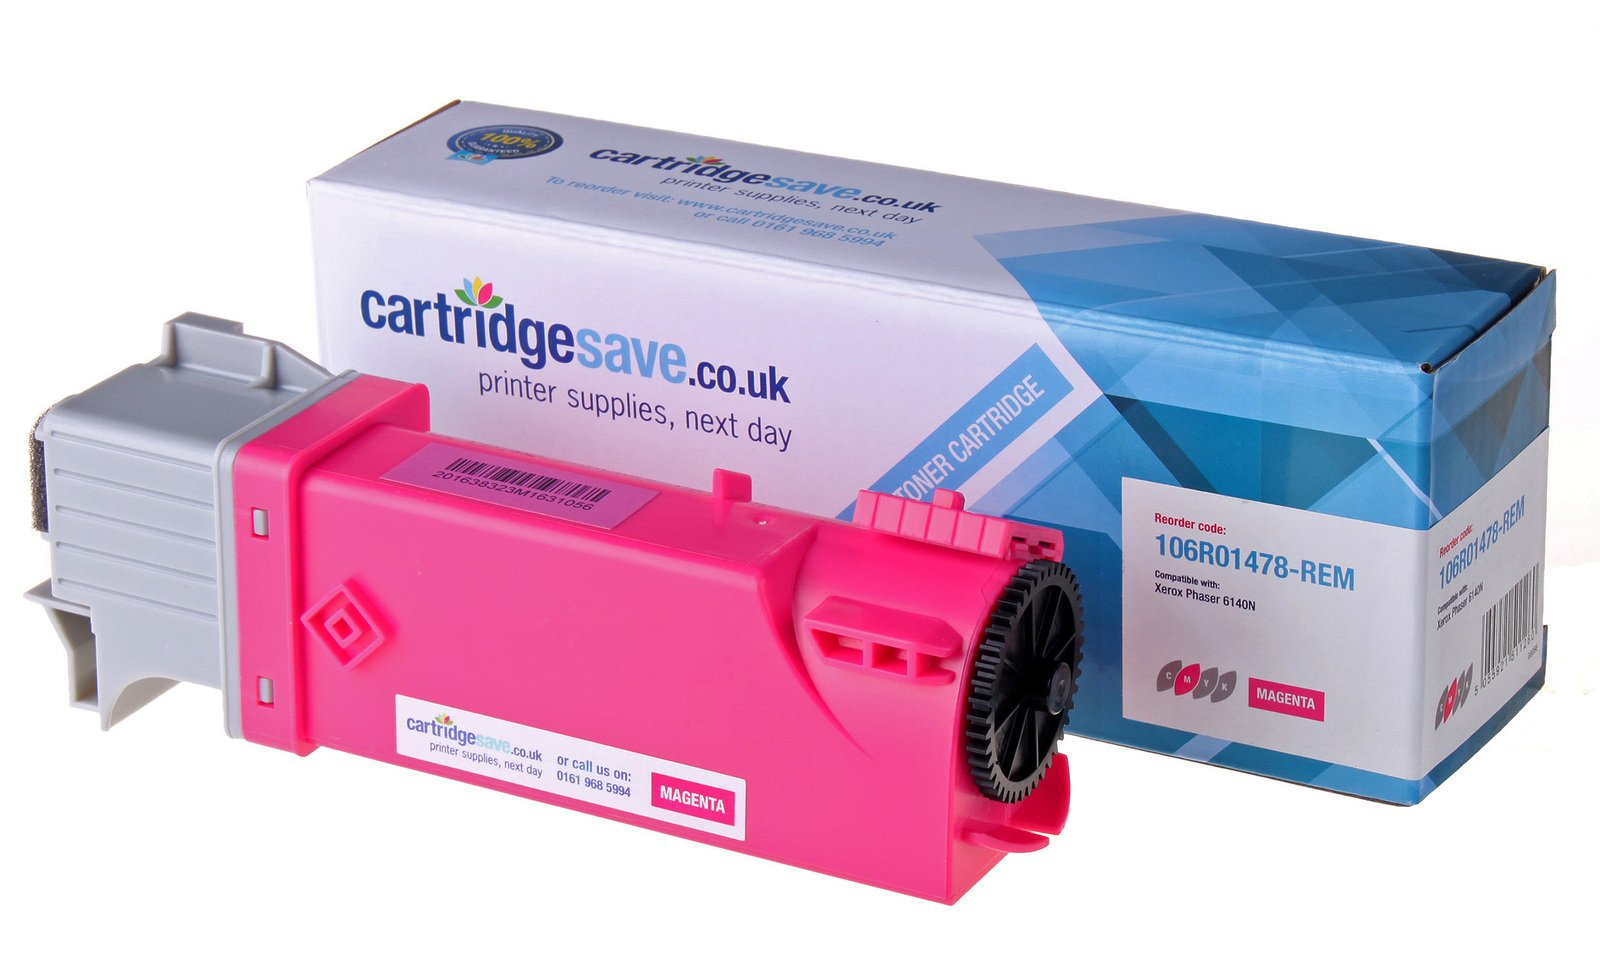 Compatible Magenta Xerox 106R01478 Laser Toner - (Replaces 106R01478 Laser Printer Cartridge)